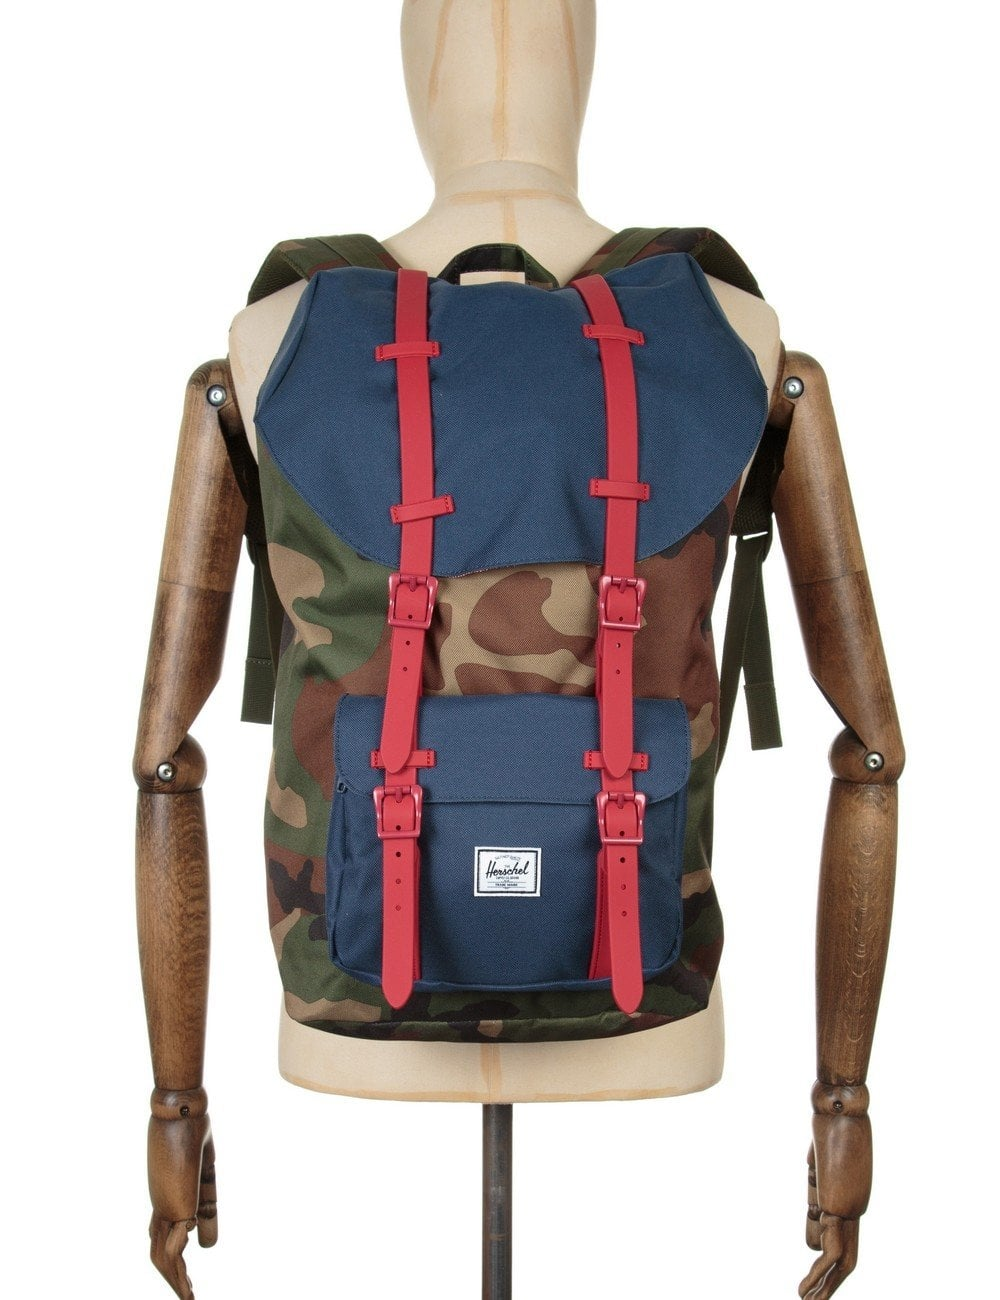 675c8c3d864 Herschel Supply Co Little America 25L Backpack - Woodland Camo Navy ...